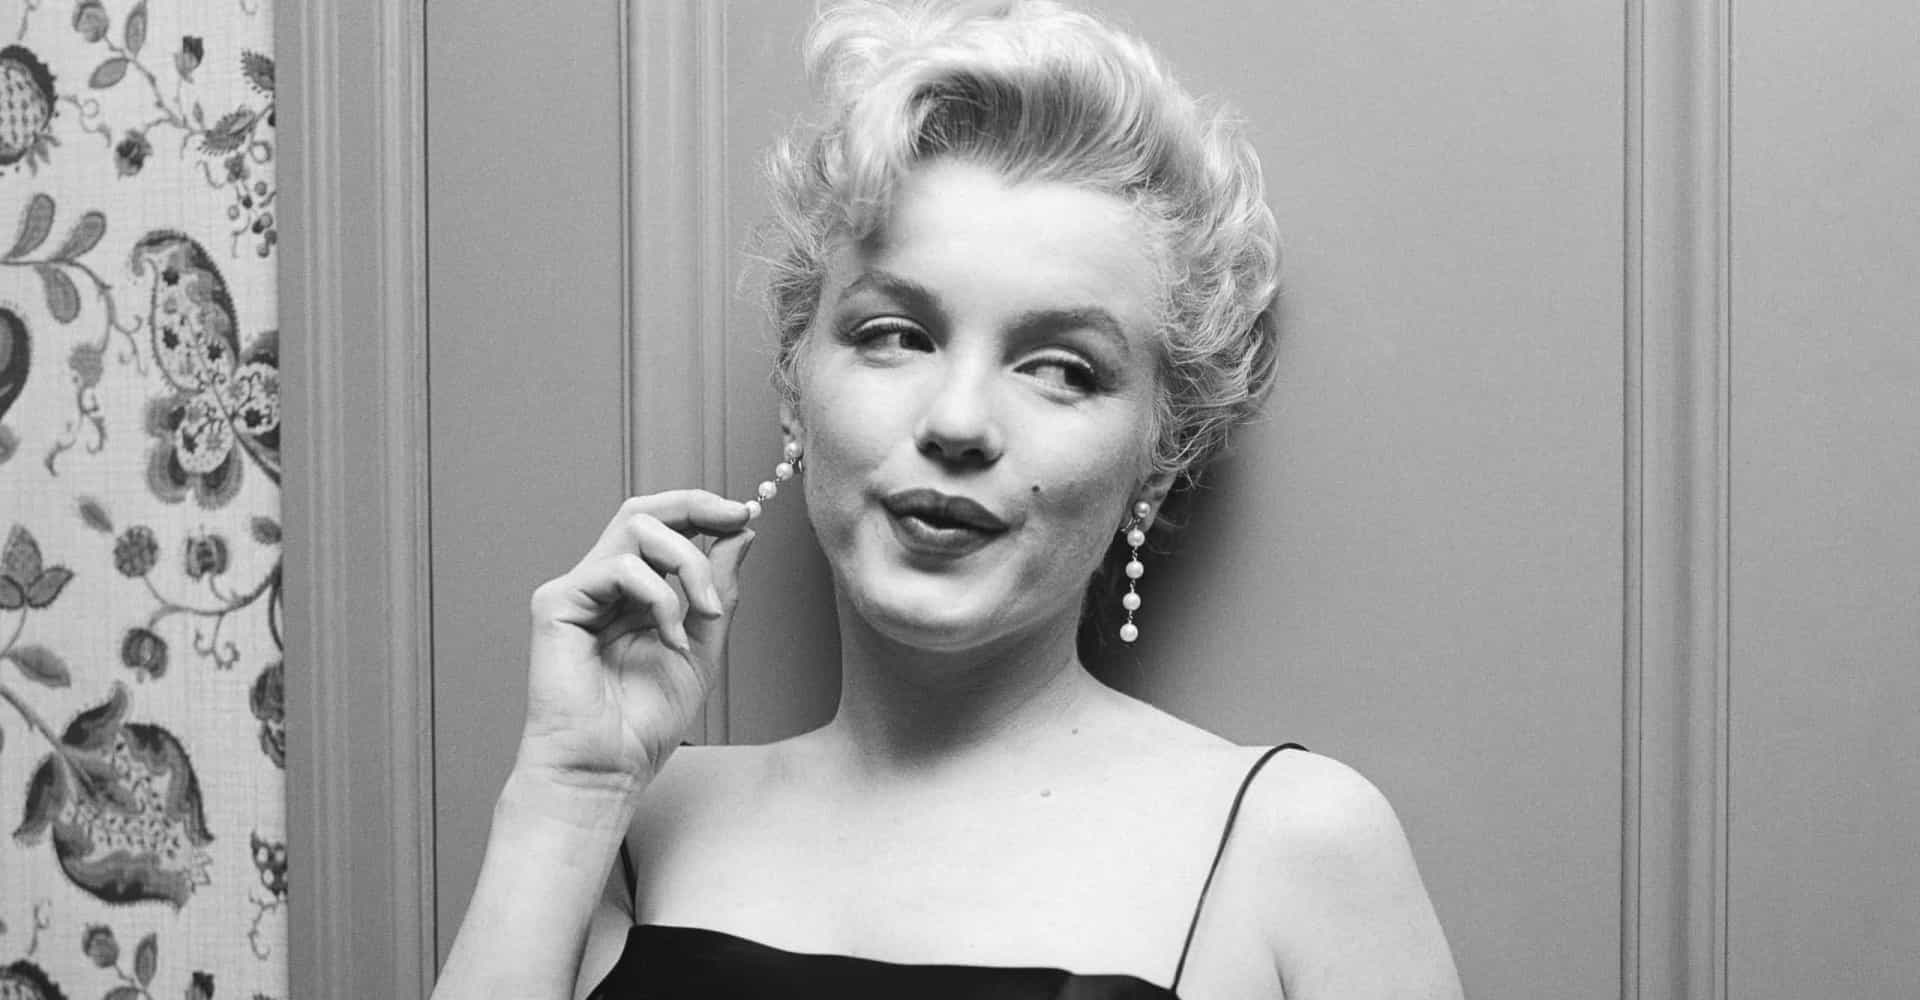 Rare photos of Marilyn Monroe reveal an unseen side of the star